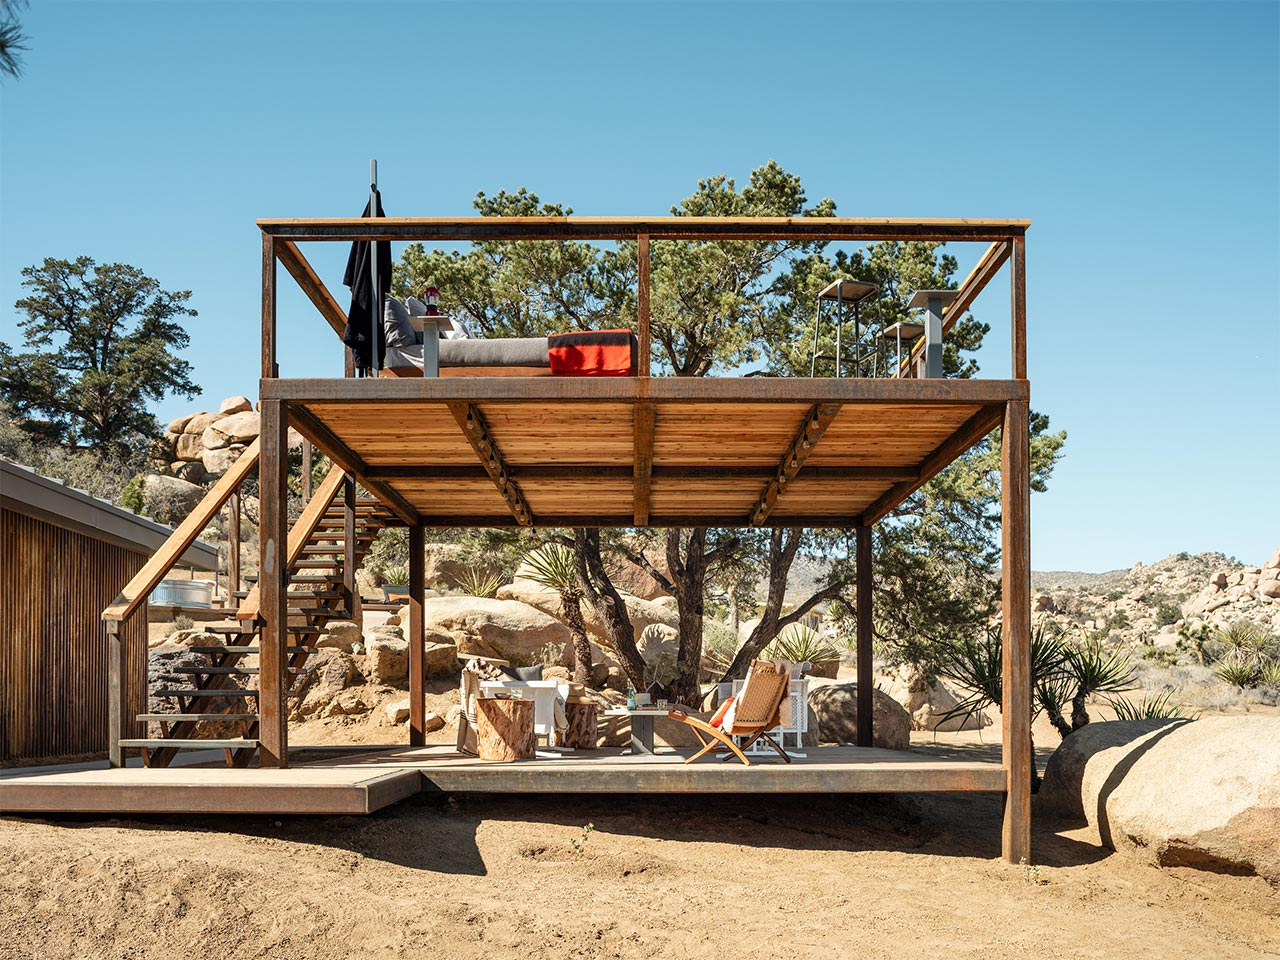 Elevated Observation / Sleeping Platforms - Sometimes the only way to take in the fully majesty of our sprawling desert is to go up a little in elevation — to remove as many visual barriers as possible. At the same time there are those of us who think there is no more magical way to fall asleep other than under a blanket of stars.Our elevated observation / sleeping platforms are designed to meet both requirements. We build them with sturdy, site-welded tube steel frames and then add redwood or ipe decking.These platforms come with a major bonus — the elevated deck creates a naturally shaded lower area perfectly suited for a summer sun-protected second deck. Two decks for the price of one!